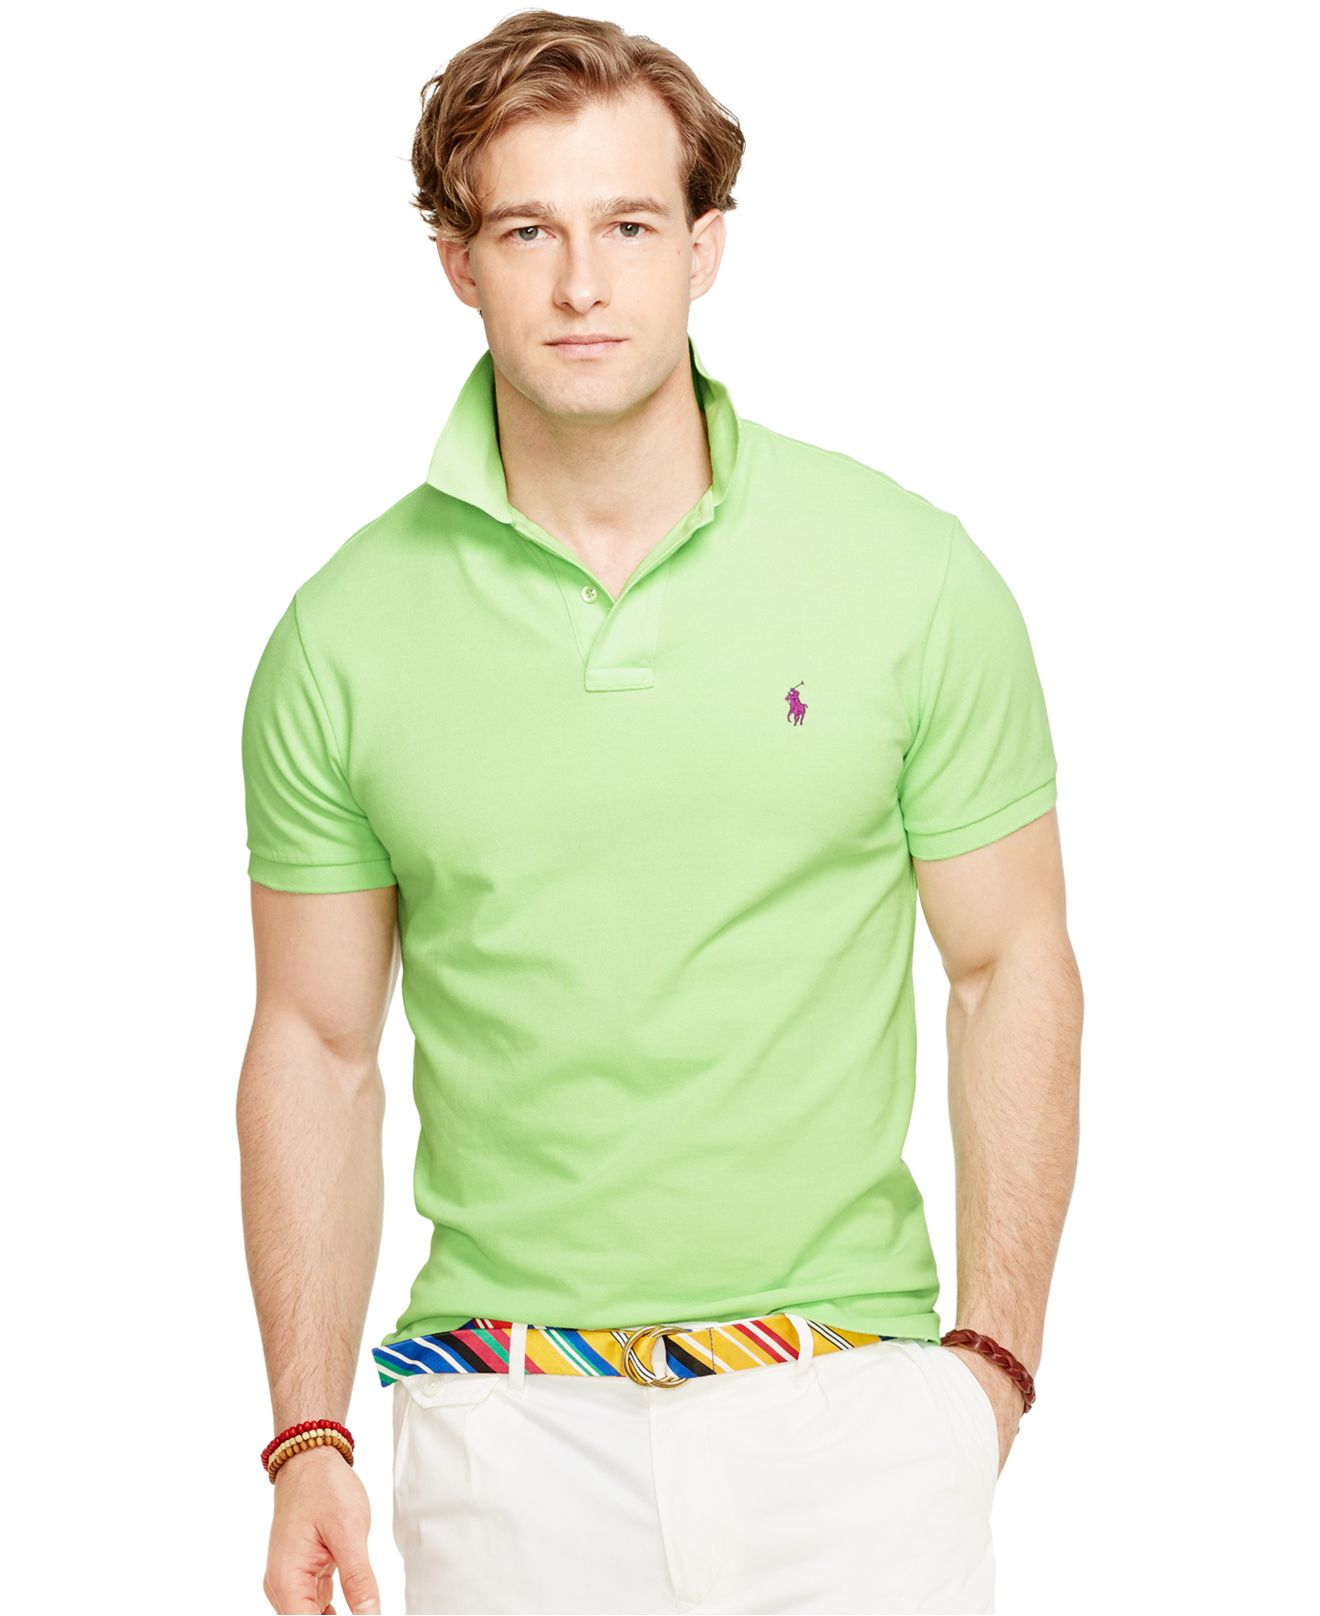 a655efa60e99 ... coupon code for lyst polo ralph lauren classic fit mesh polo in green for  men c326a